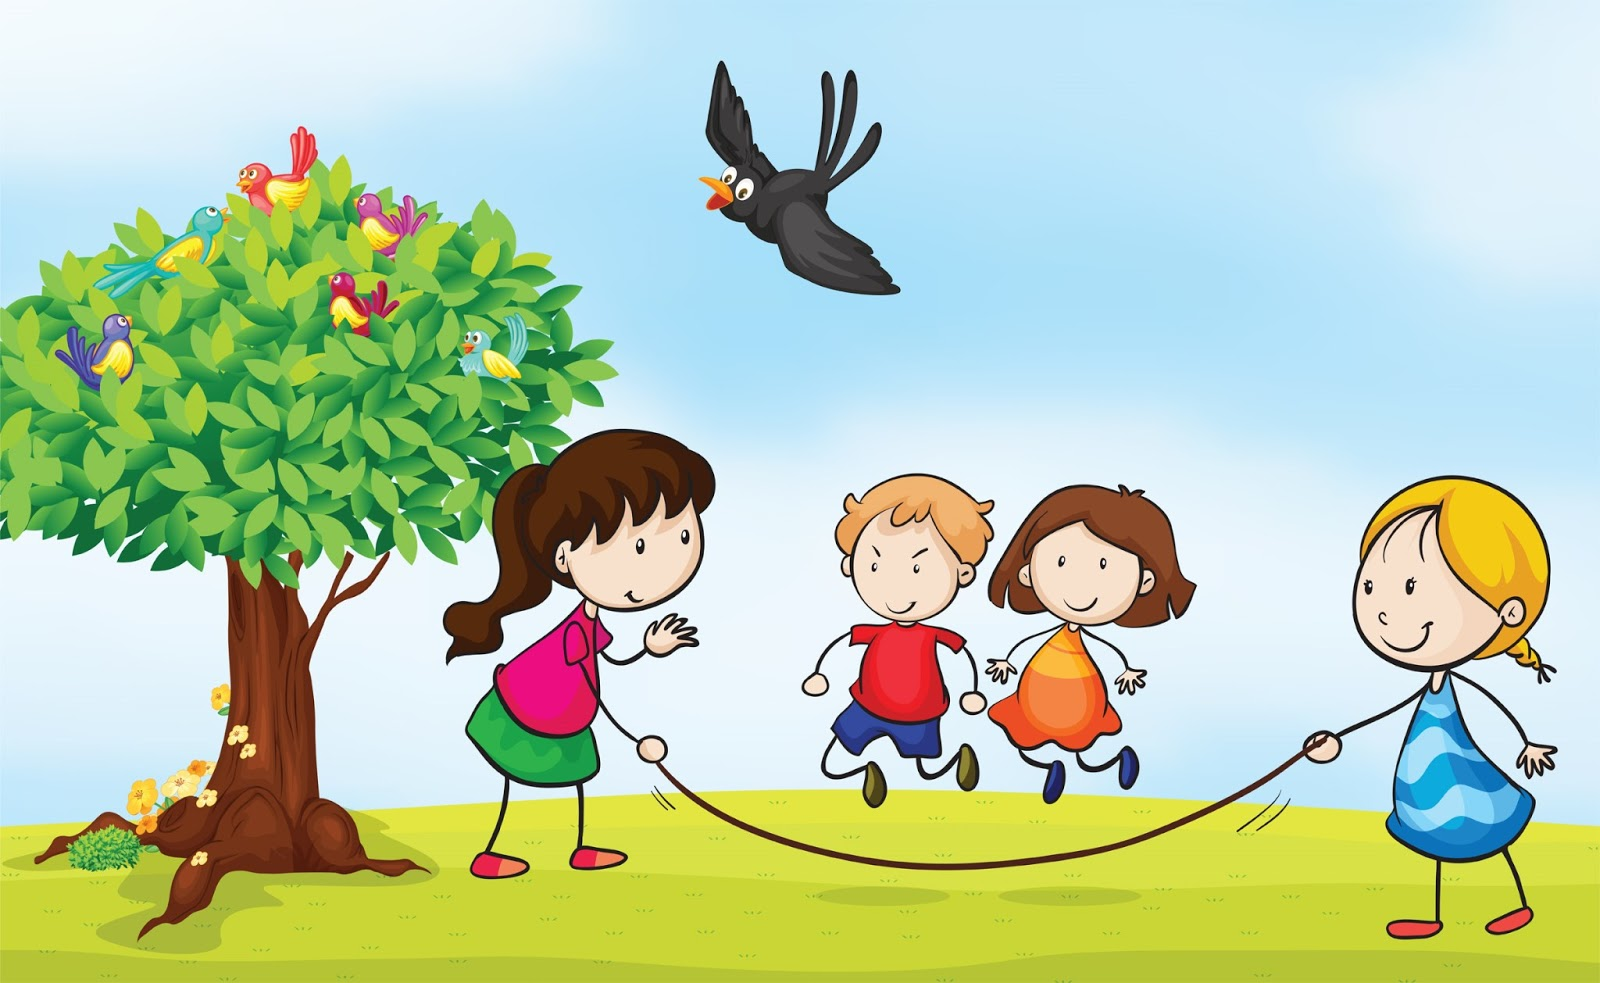 Kids outside play clipart.